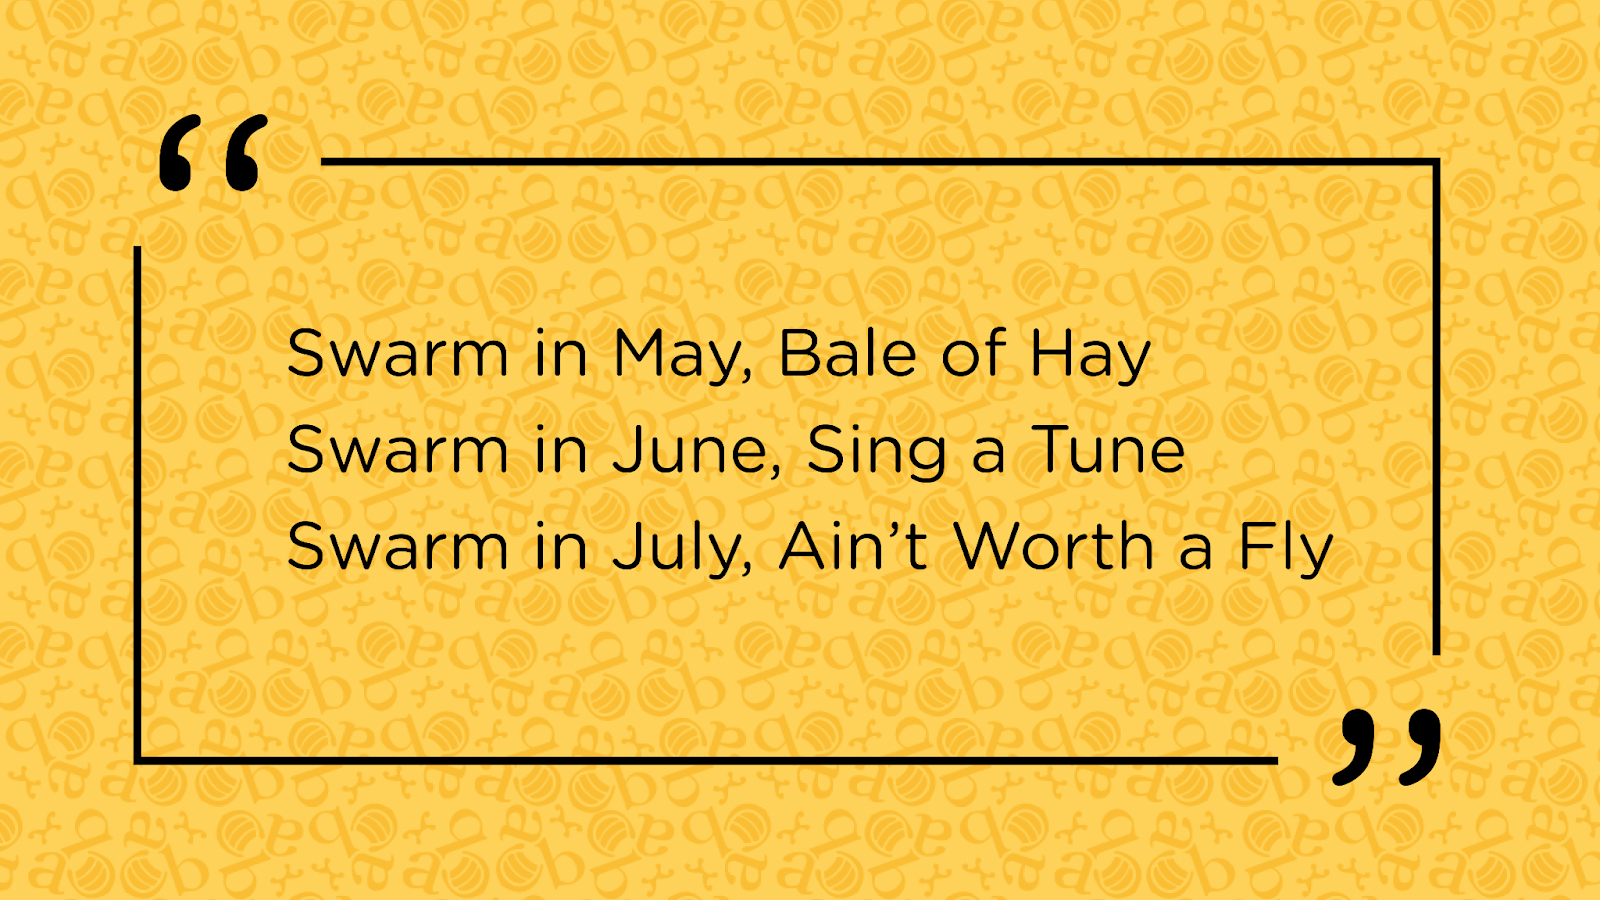 Swarm in May, Bale of Hay. Swarm in June, Sing a Tune. Swarm in July, Ain't worth a fly. A saying that describes the value of swarms at different times of the year. Ideally you don't want honey bound swarms.